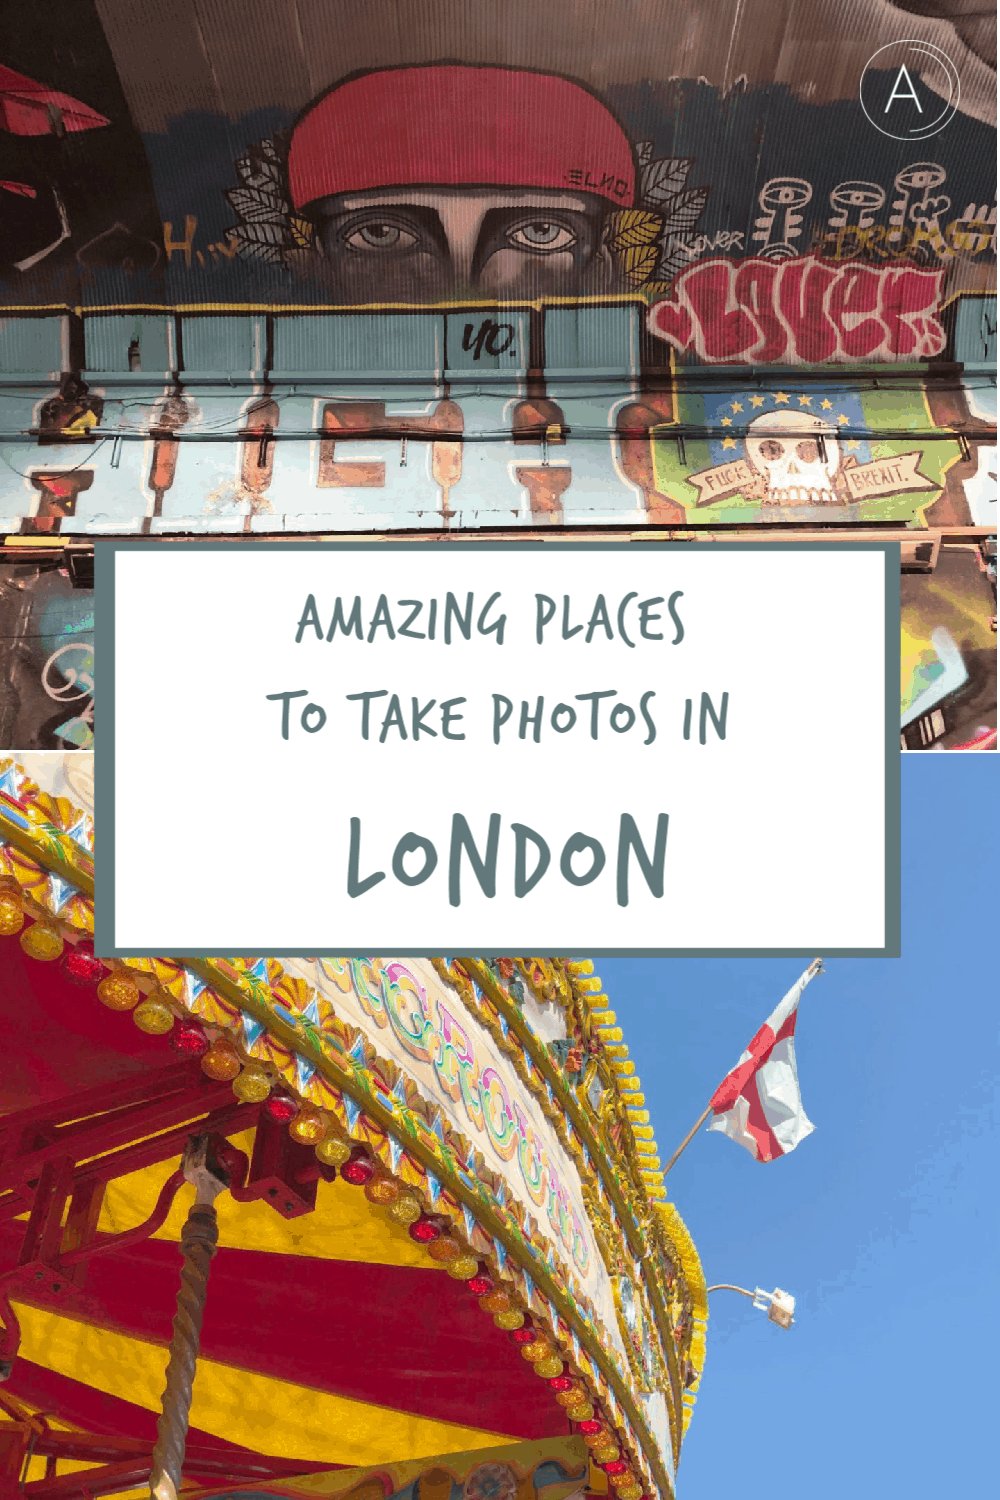 Amazing places to take photos and things to see in London